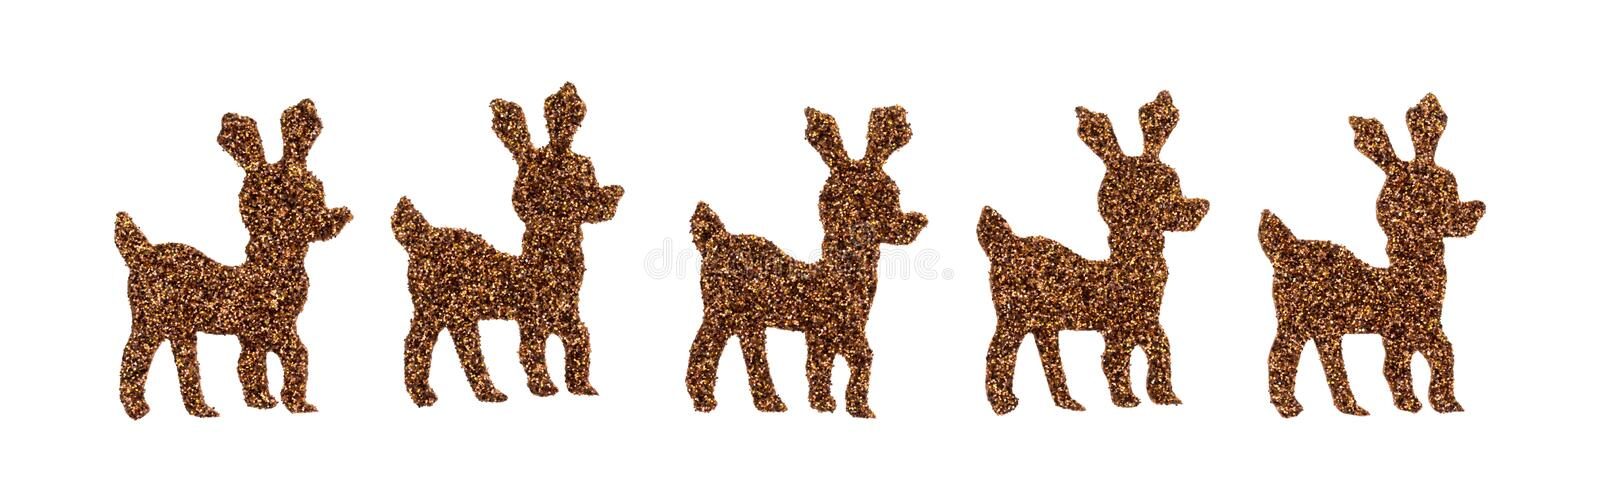 Brown glitter reindeer stickers on a white background. A row of brown glitter reindeer stickers isolated on a white background stock photos